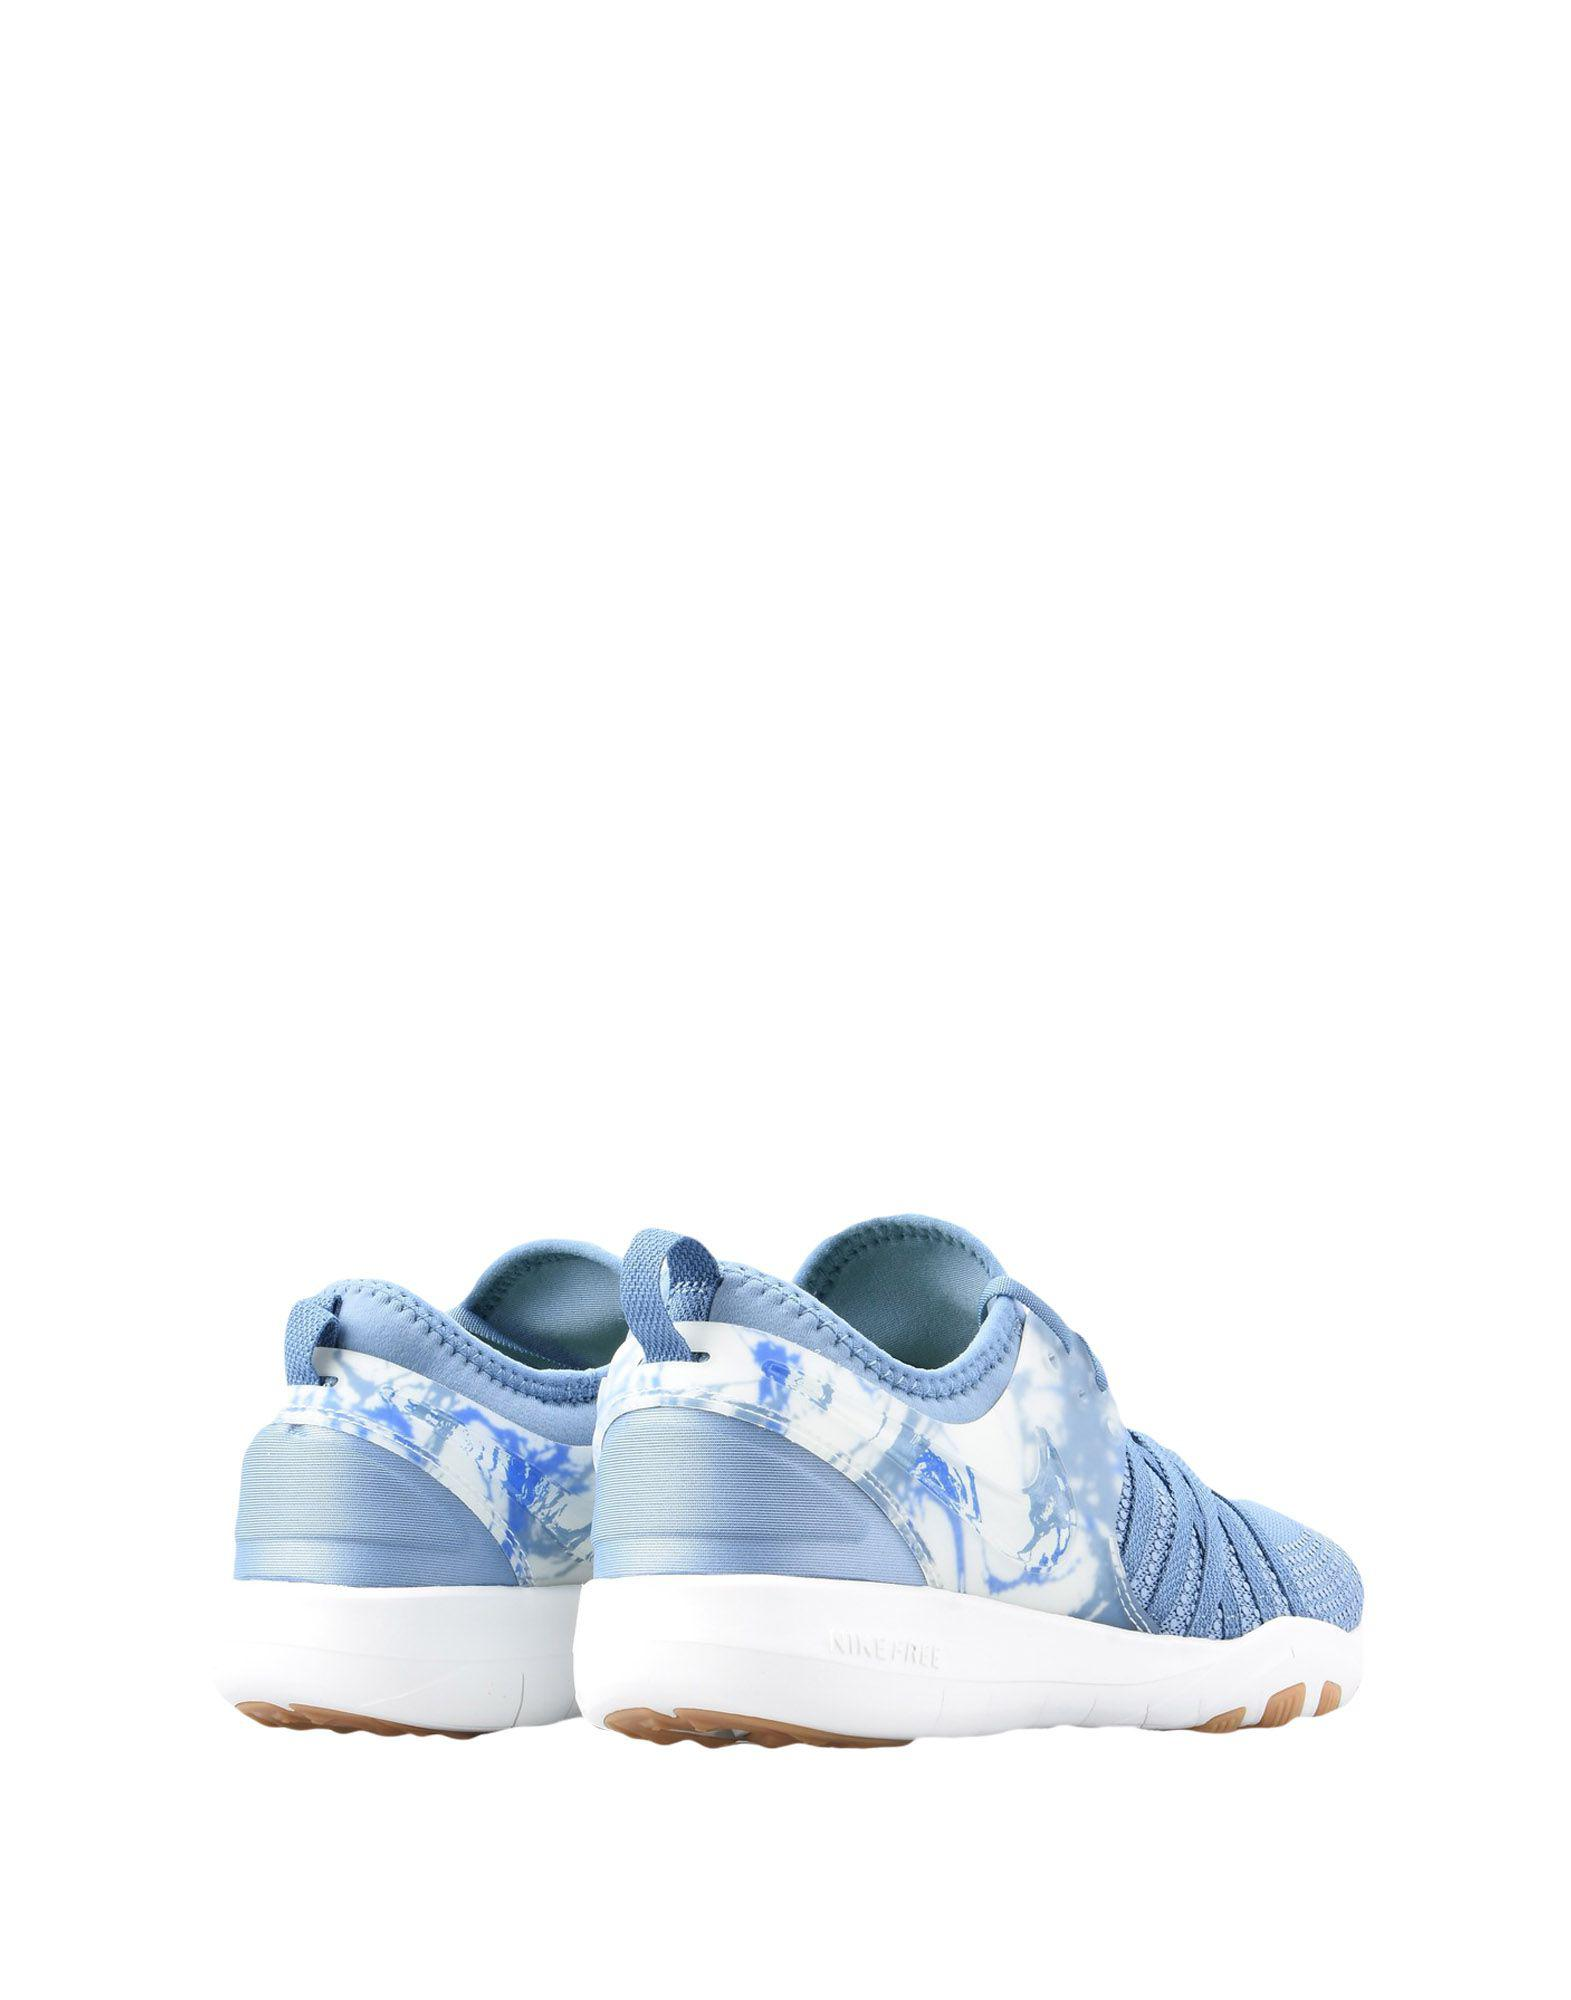 Nike Low-tops & Sneakers in Pastel Blue (Blue)